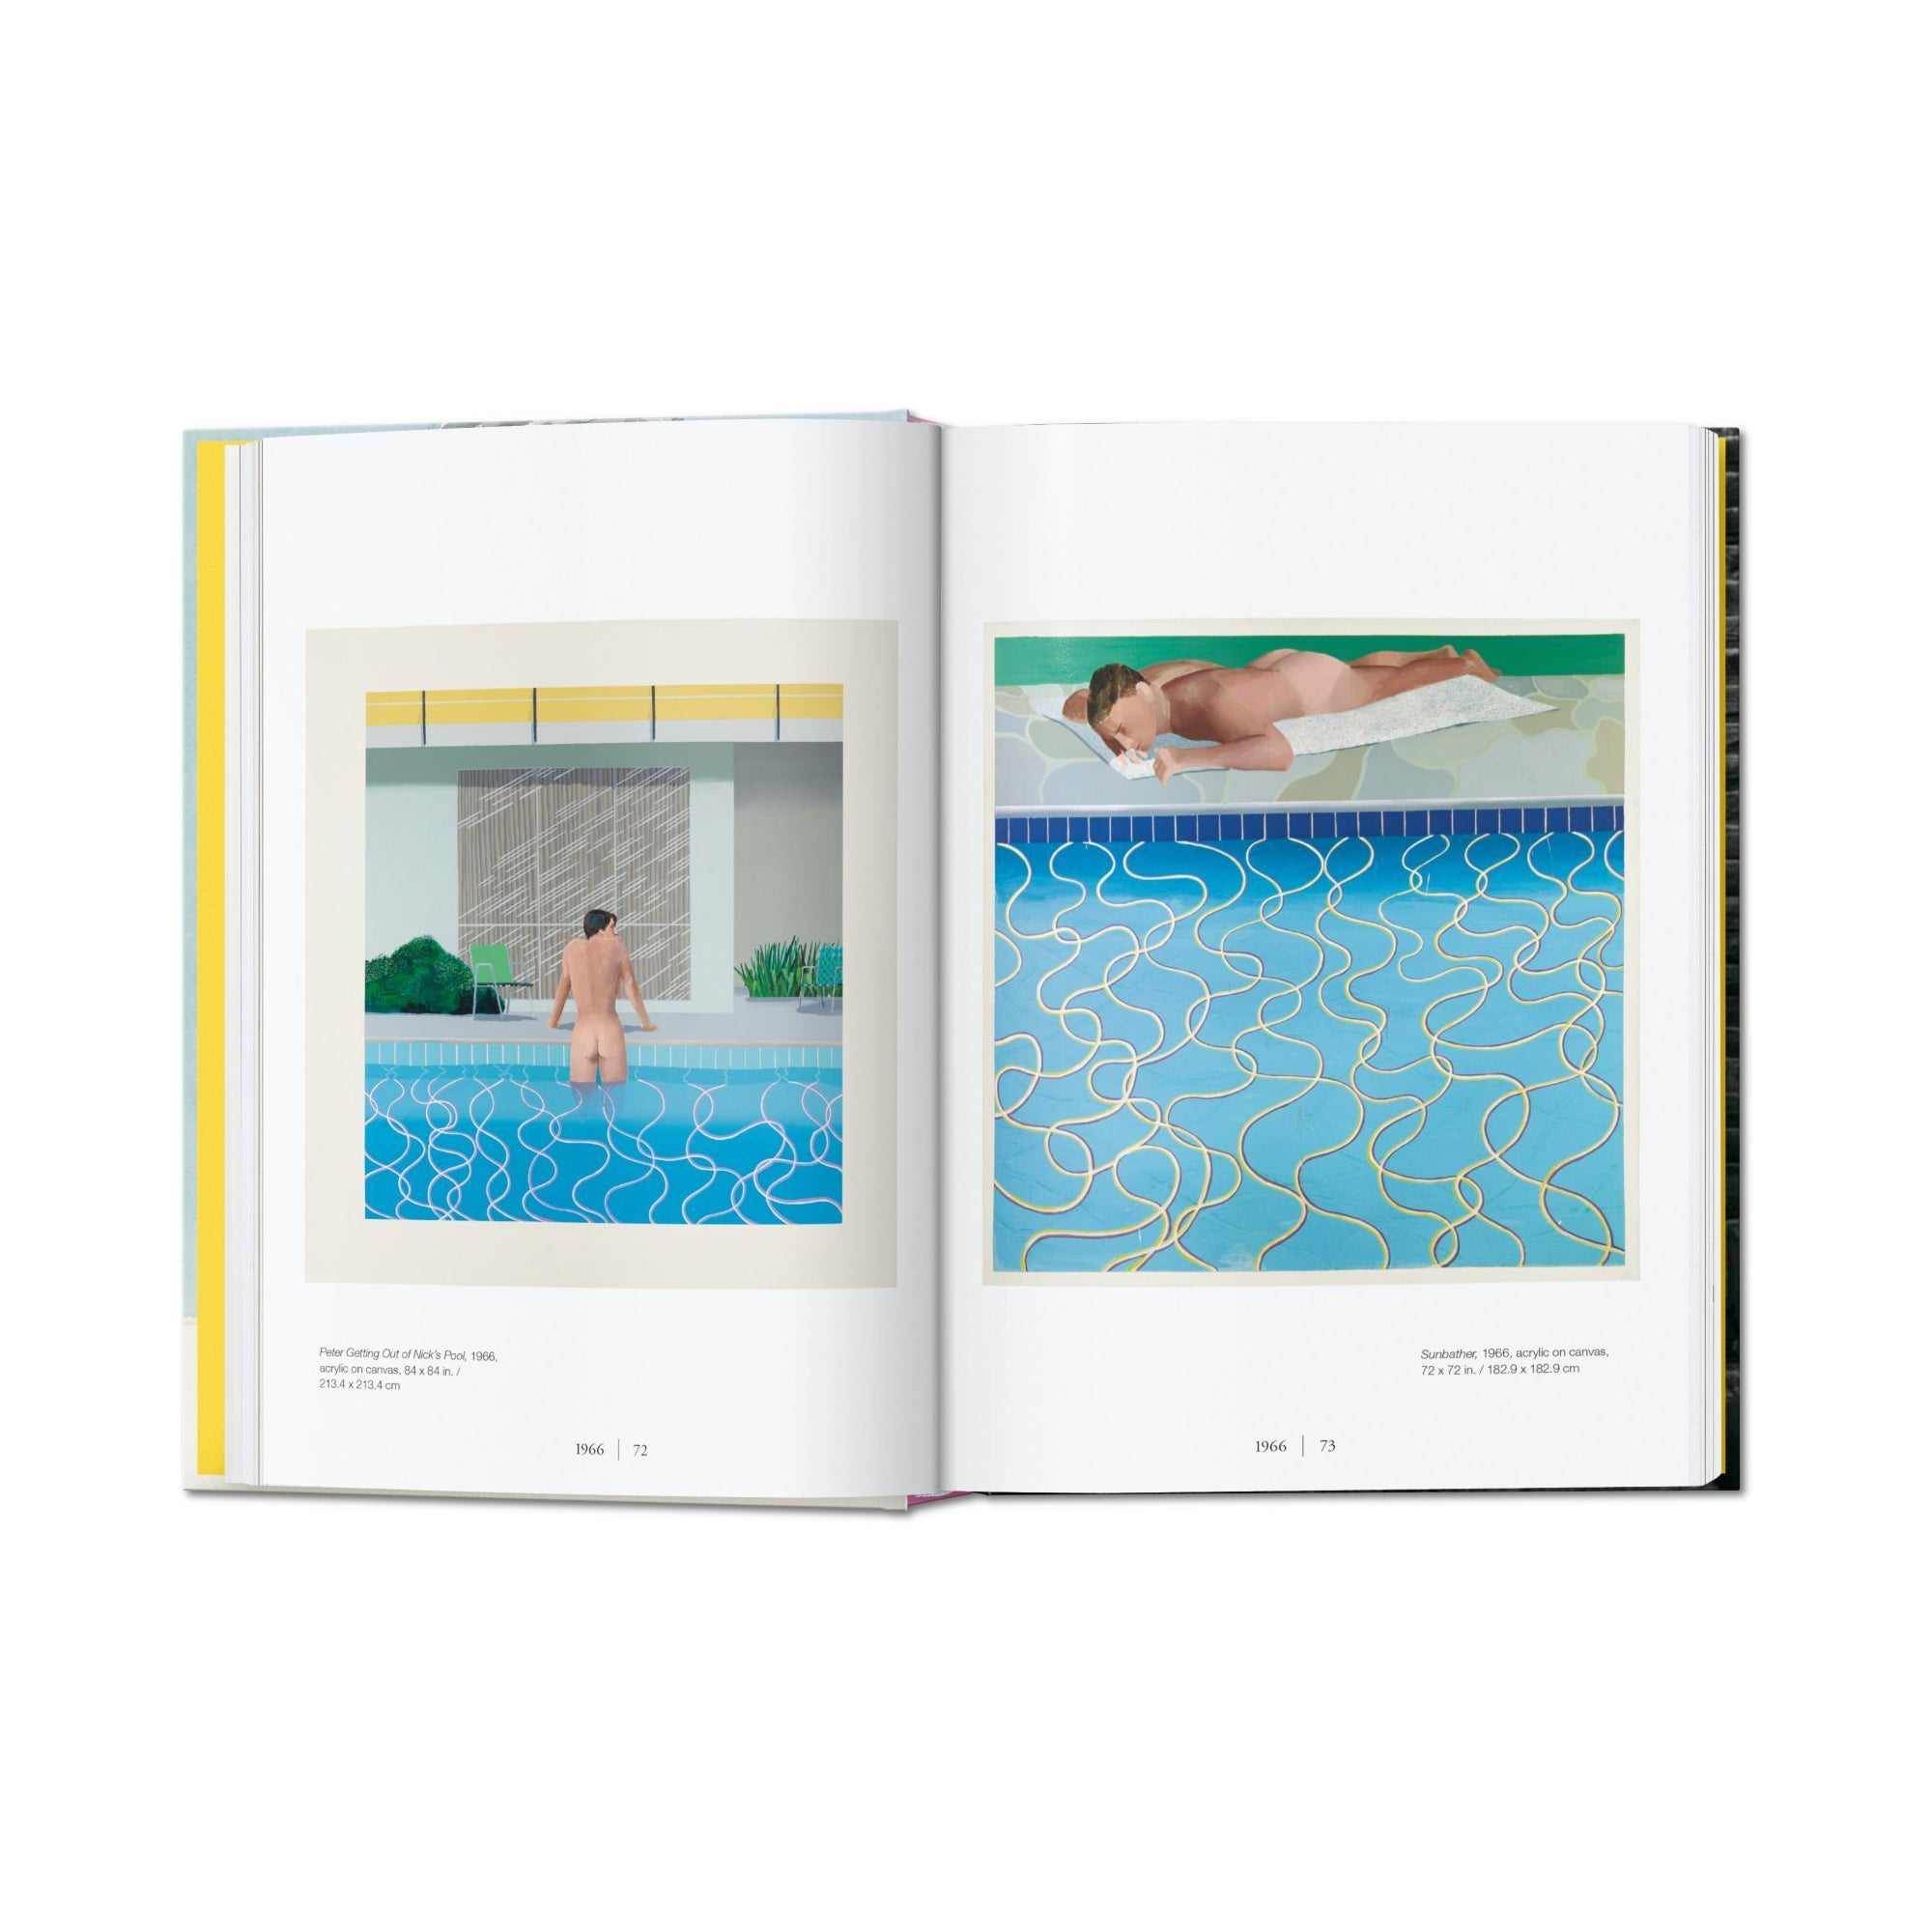 David Hockney. A Chronology. 40th Aniversary Edition